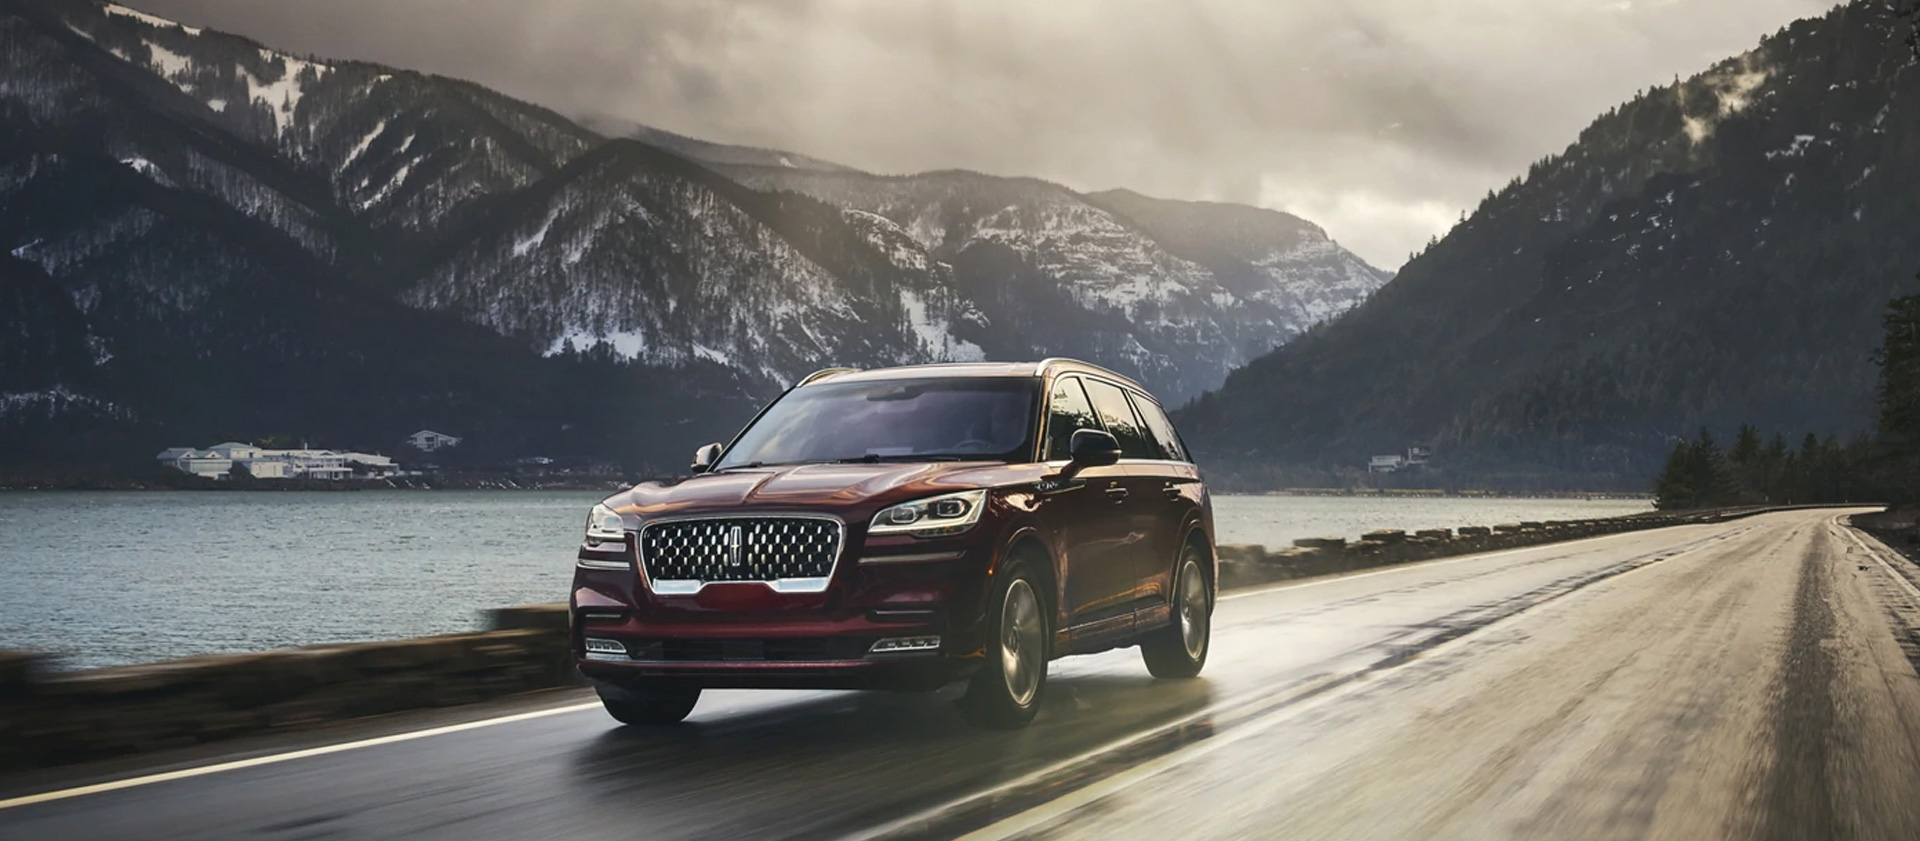 2021 Lincoln Aviator - Driving with snowy mountains in the background